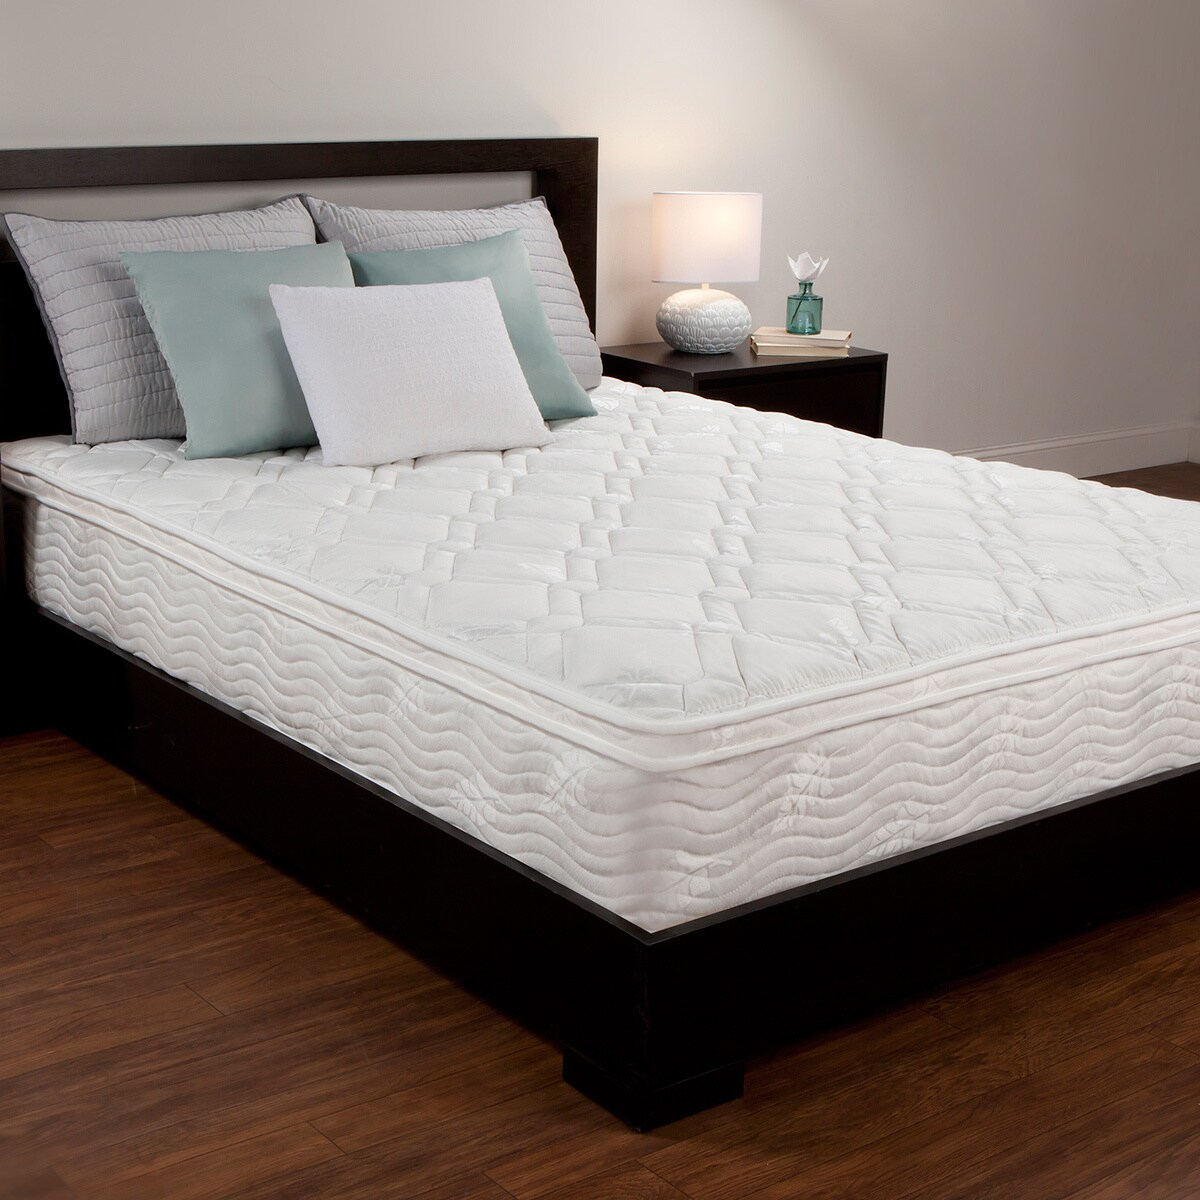 Queen Size Bed.Comfort Memories 10 Inch Queen Size Mattress